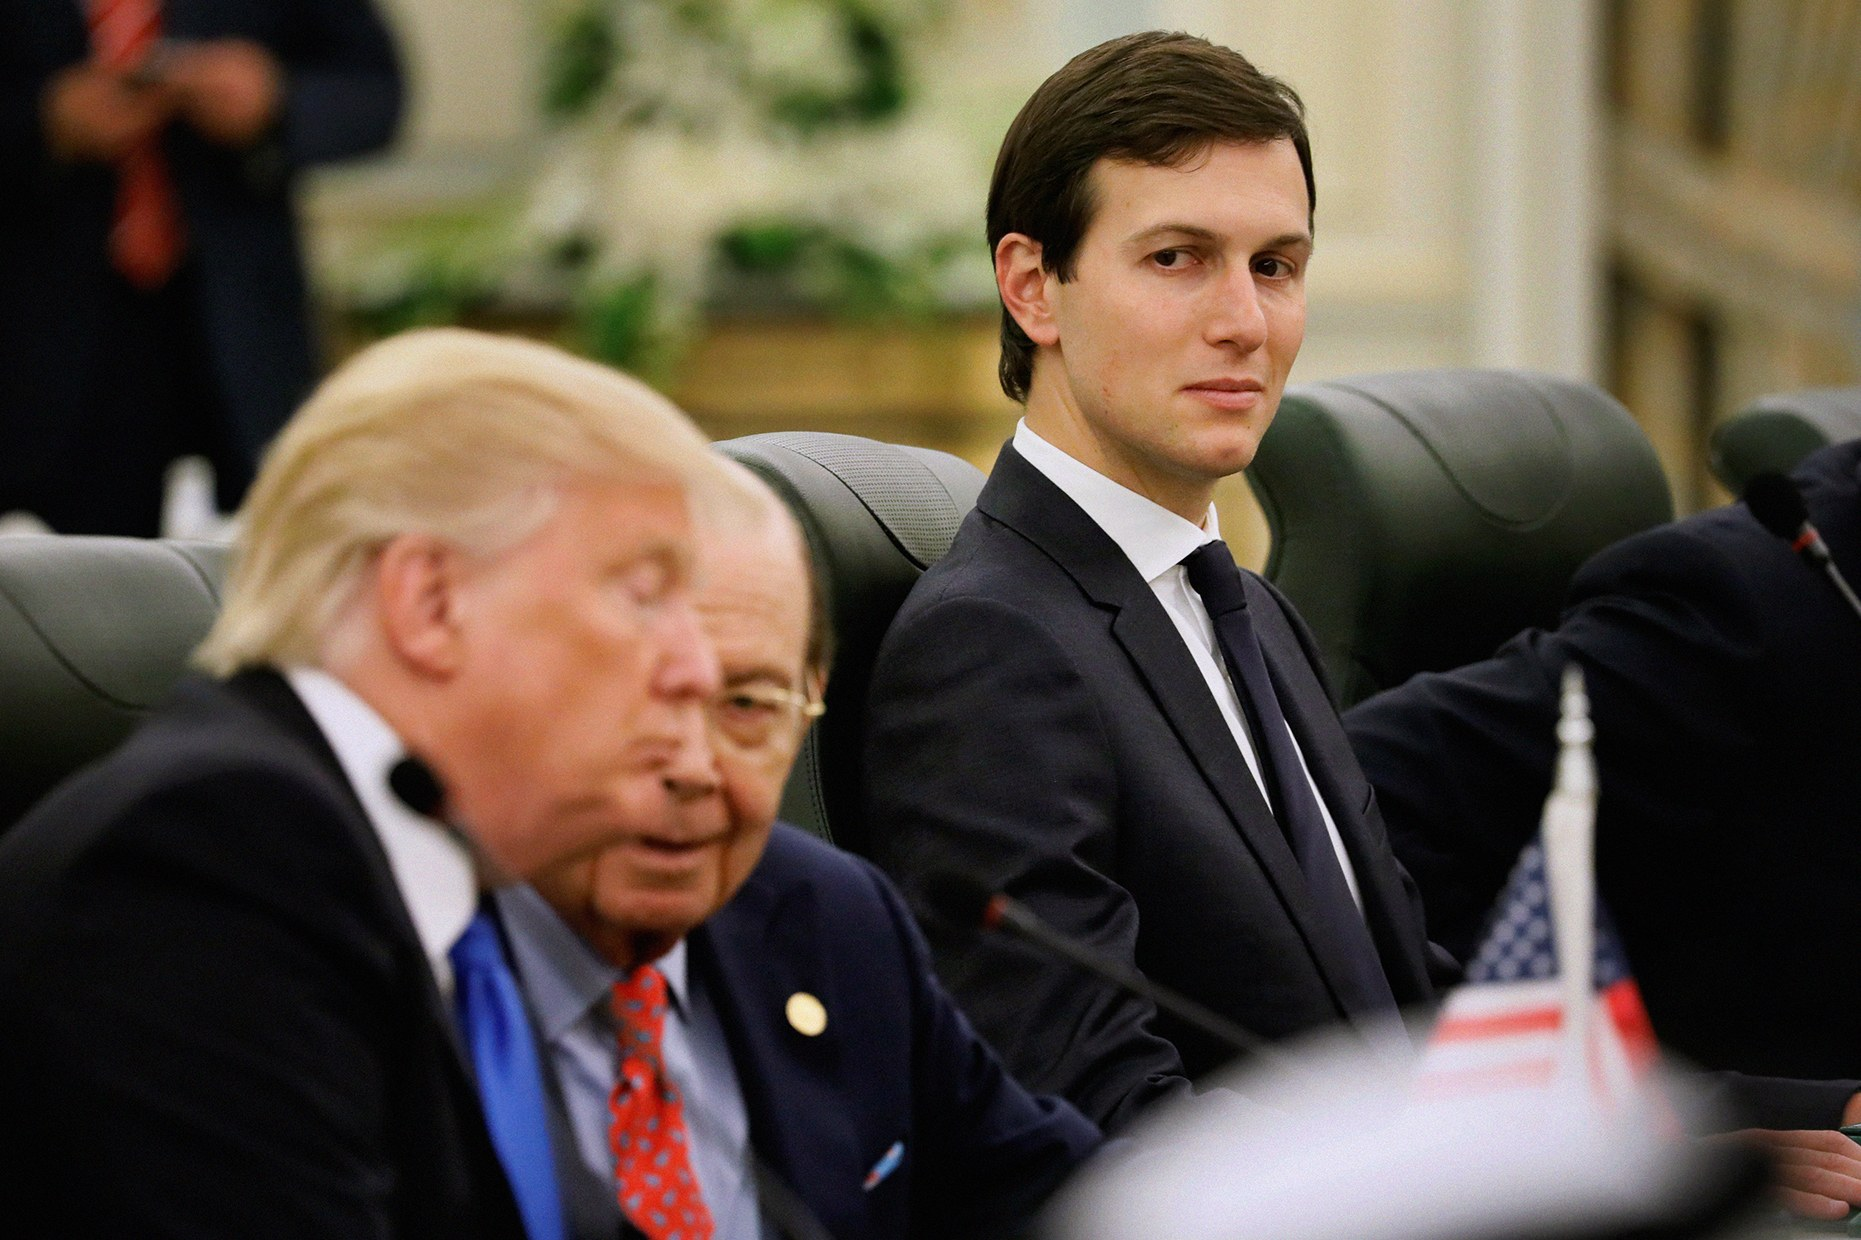 jared-kushner-trump-split-pending